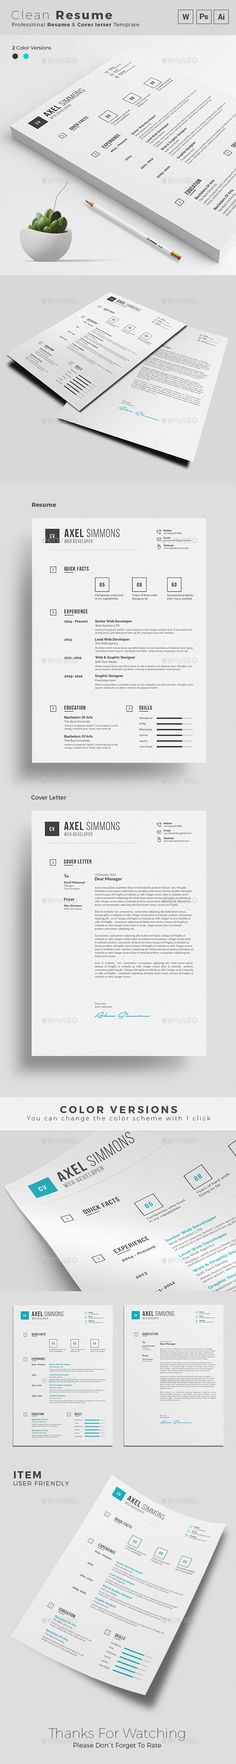 Resume template Download, Designs and Template - net resume